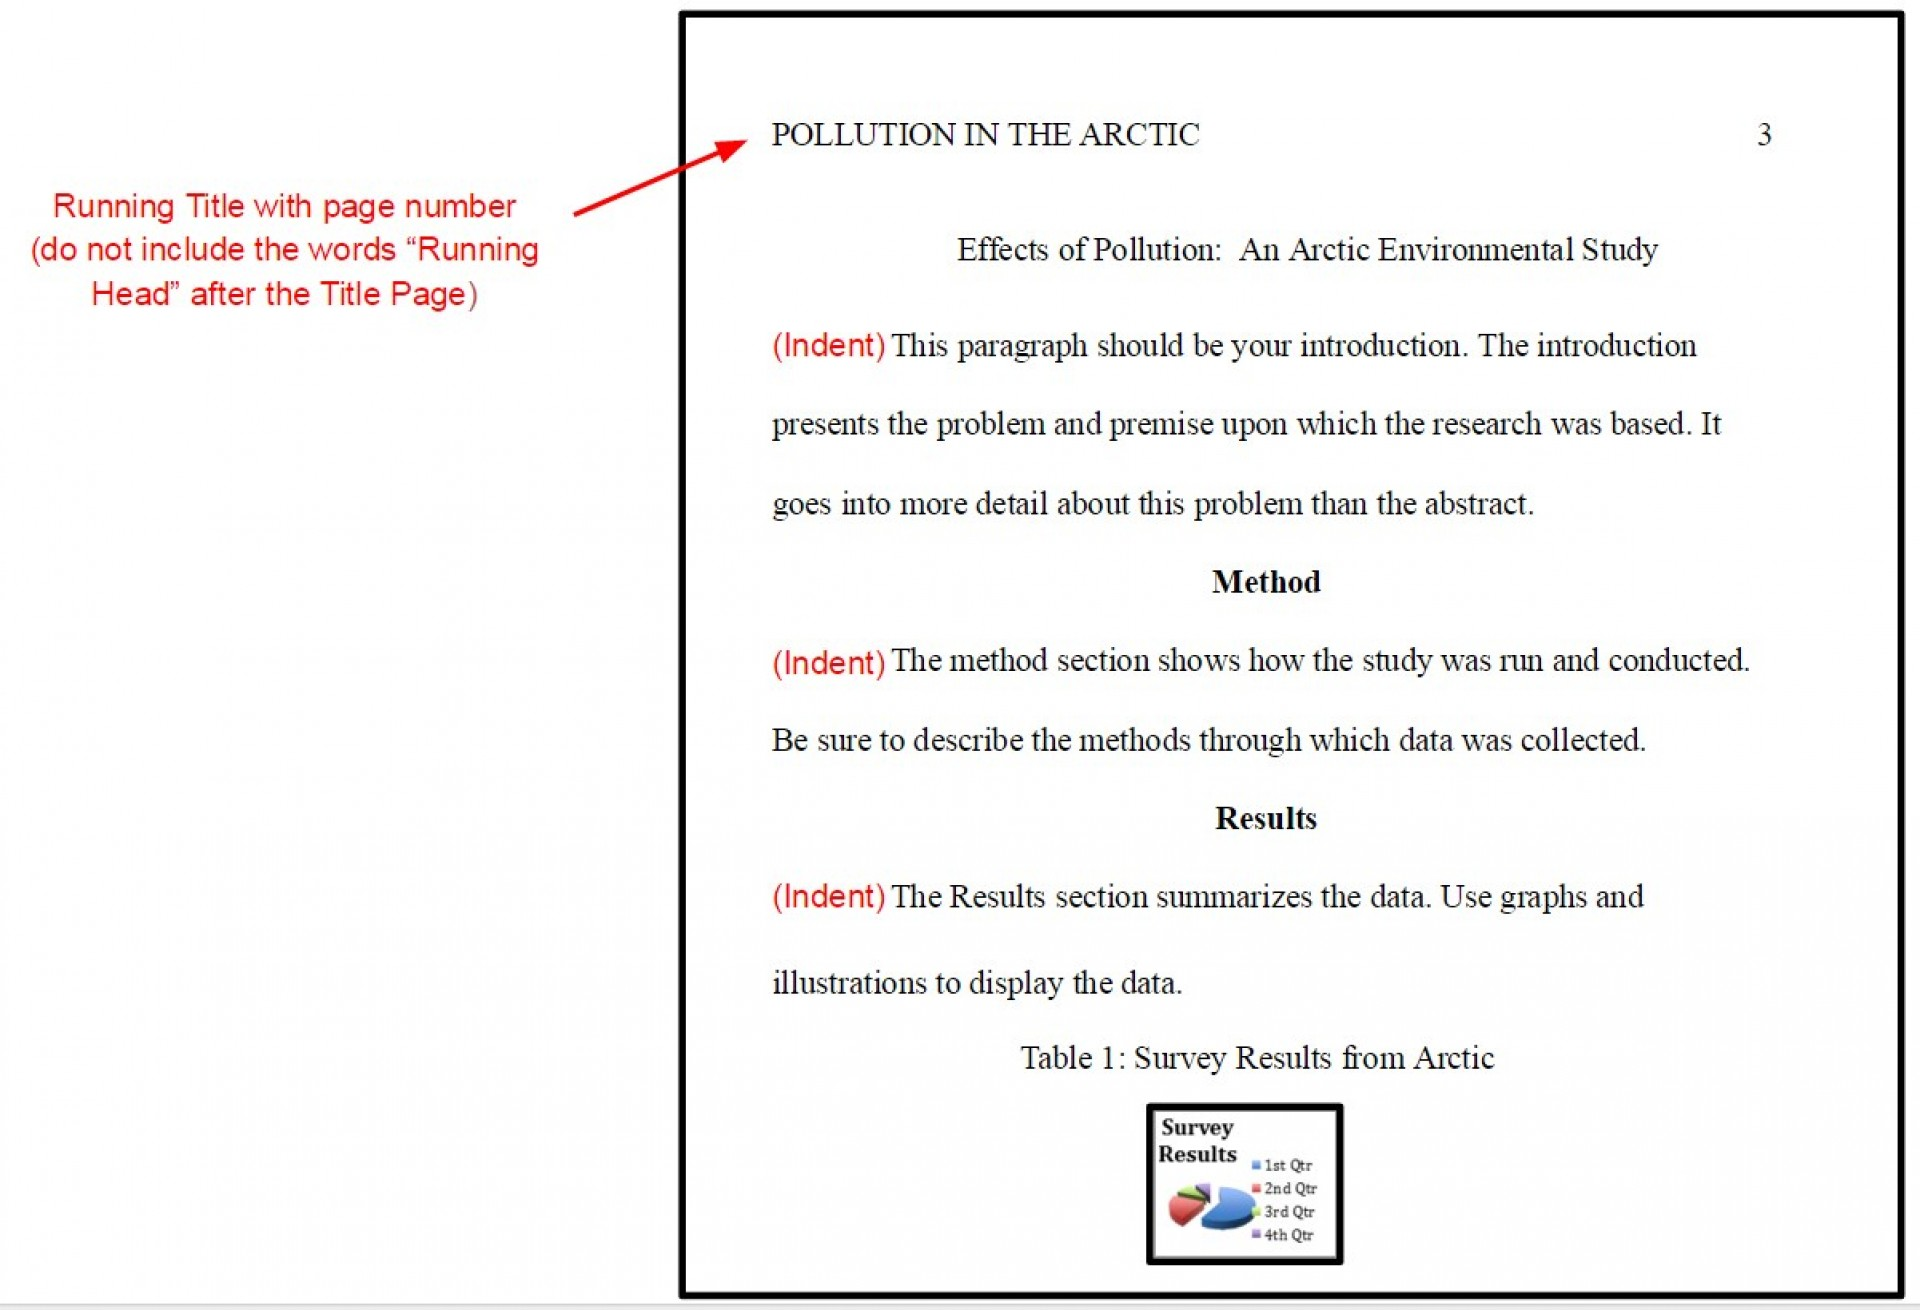 006 Apamethods Research Paper Header And Footer Marvelous For 1920